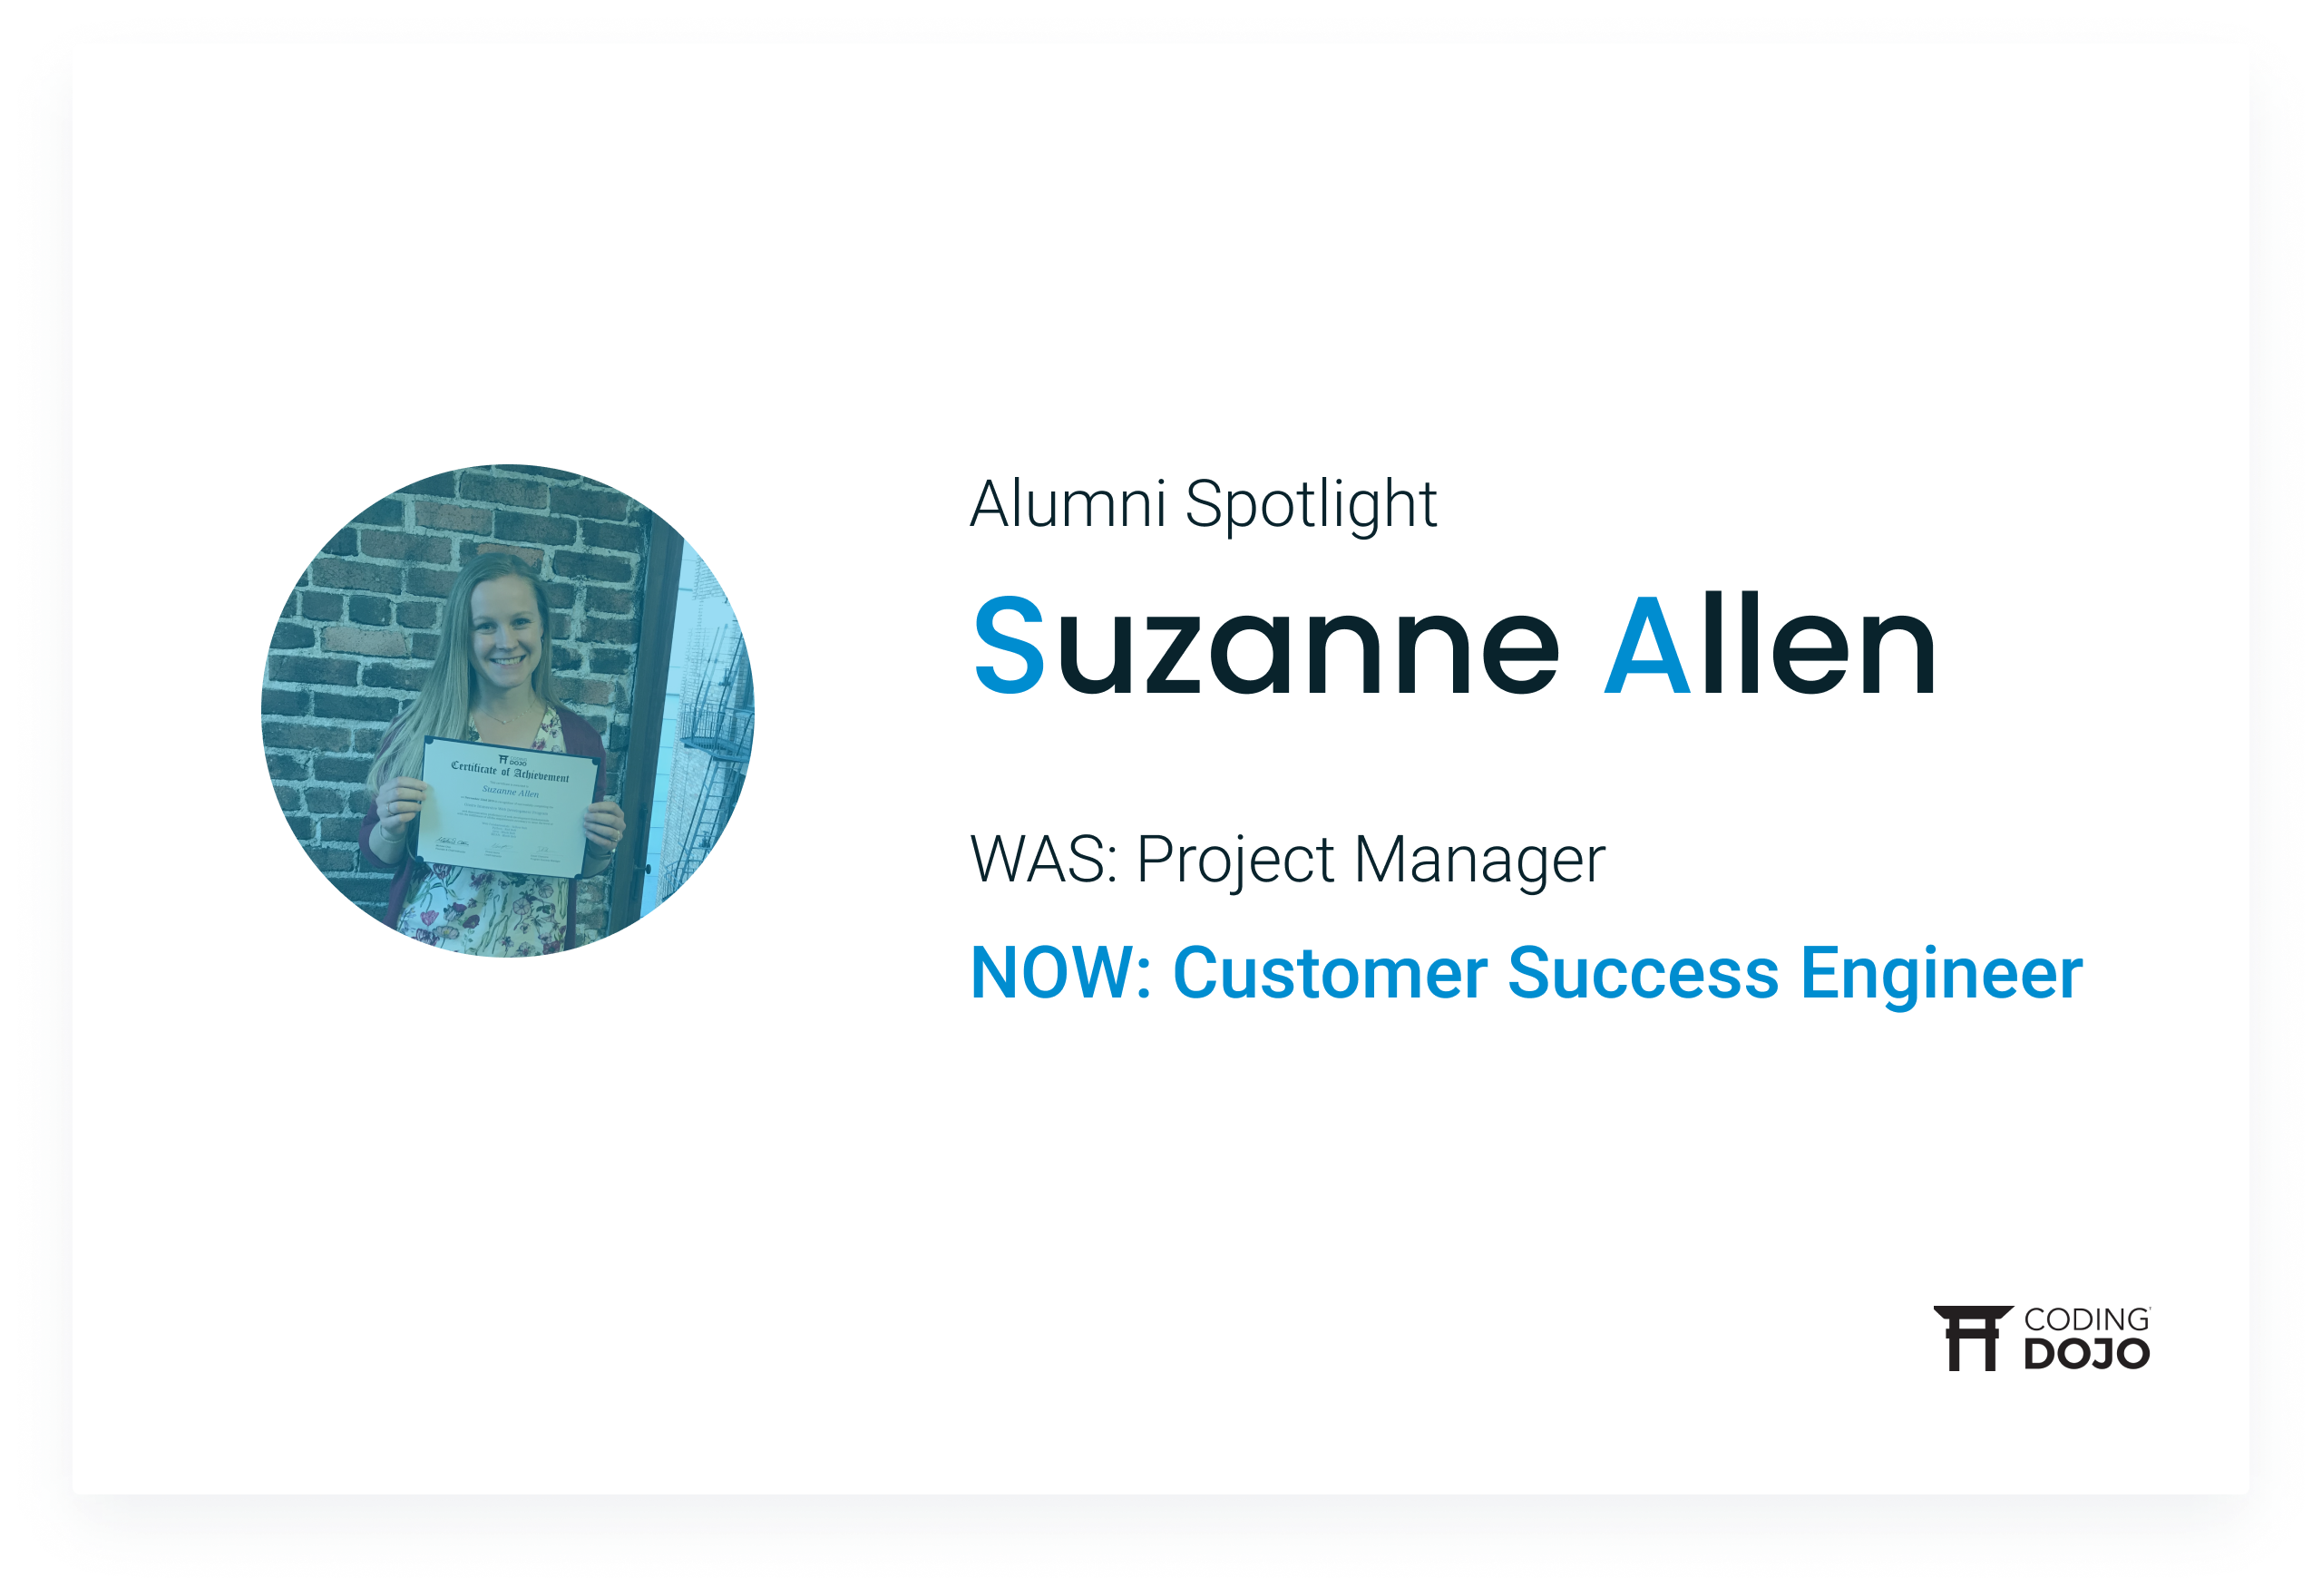 From B2B Marketing to Building Robots | How Suzanne Allen Gained Confidence & a New Career